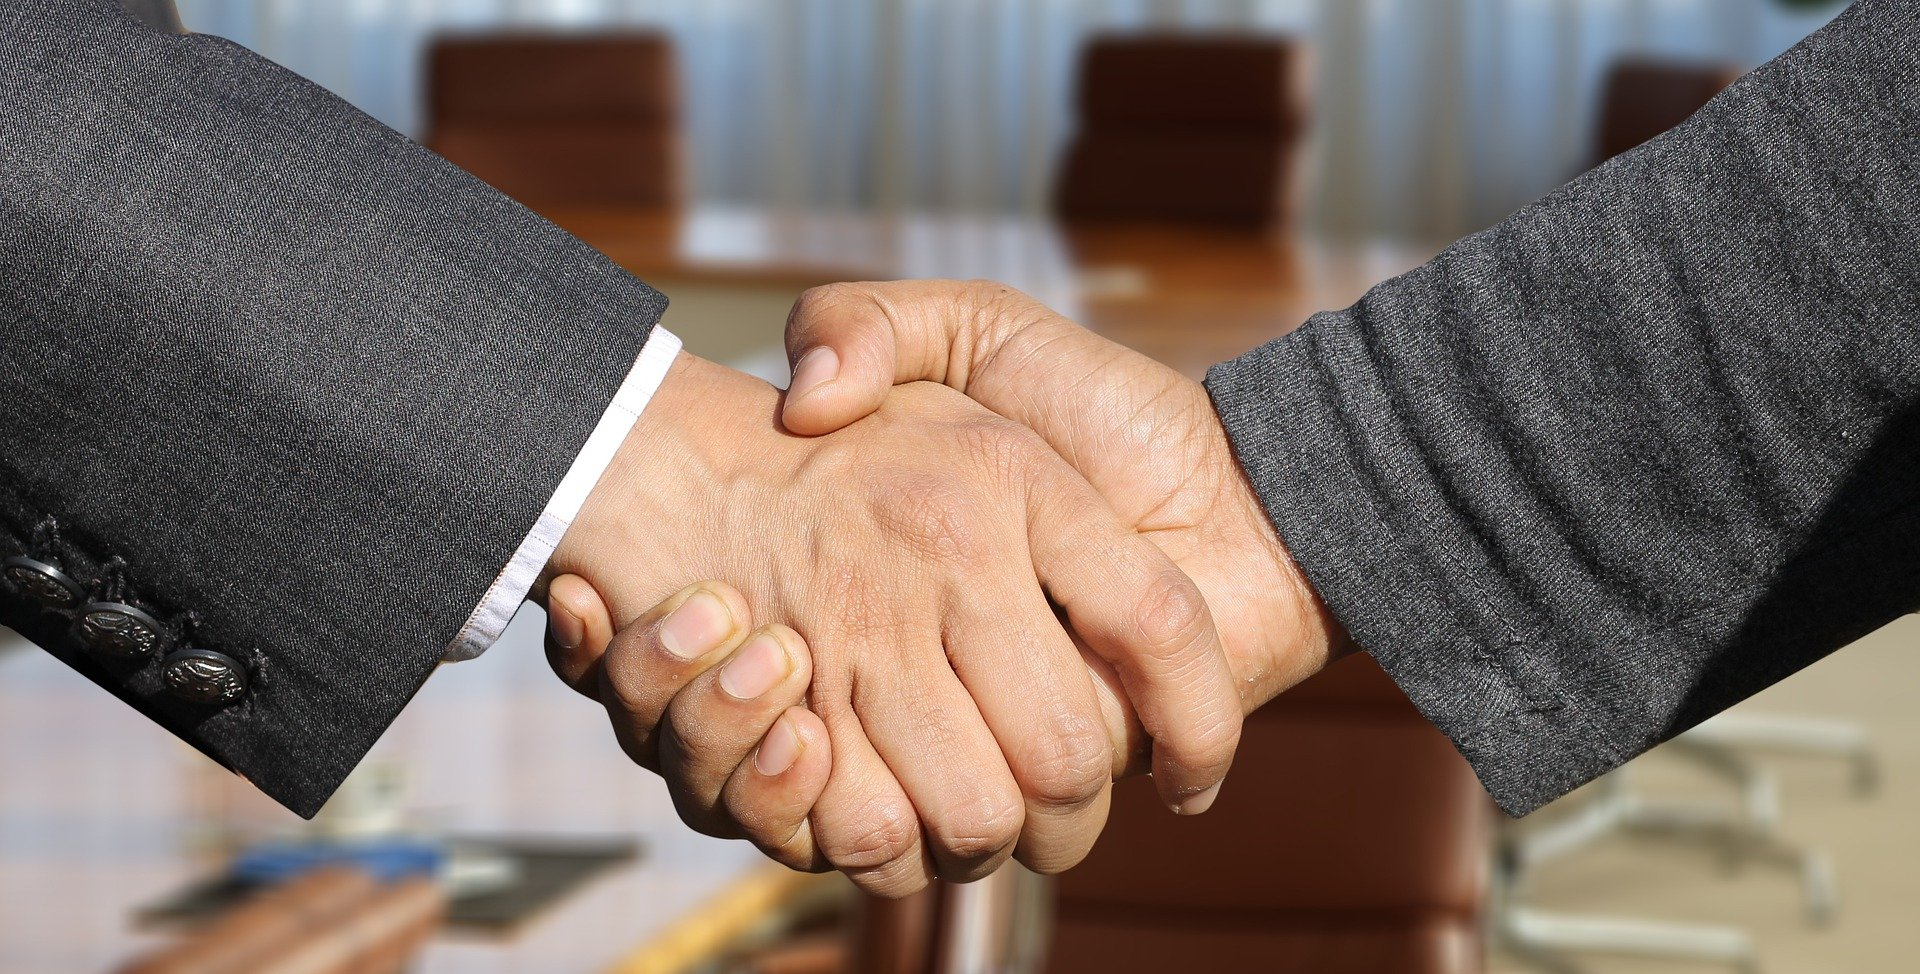 Two people in suits shaking hands with a meeting room in the background.